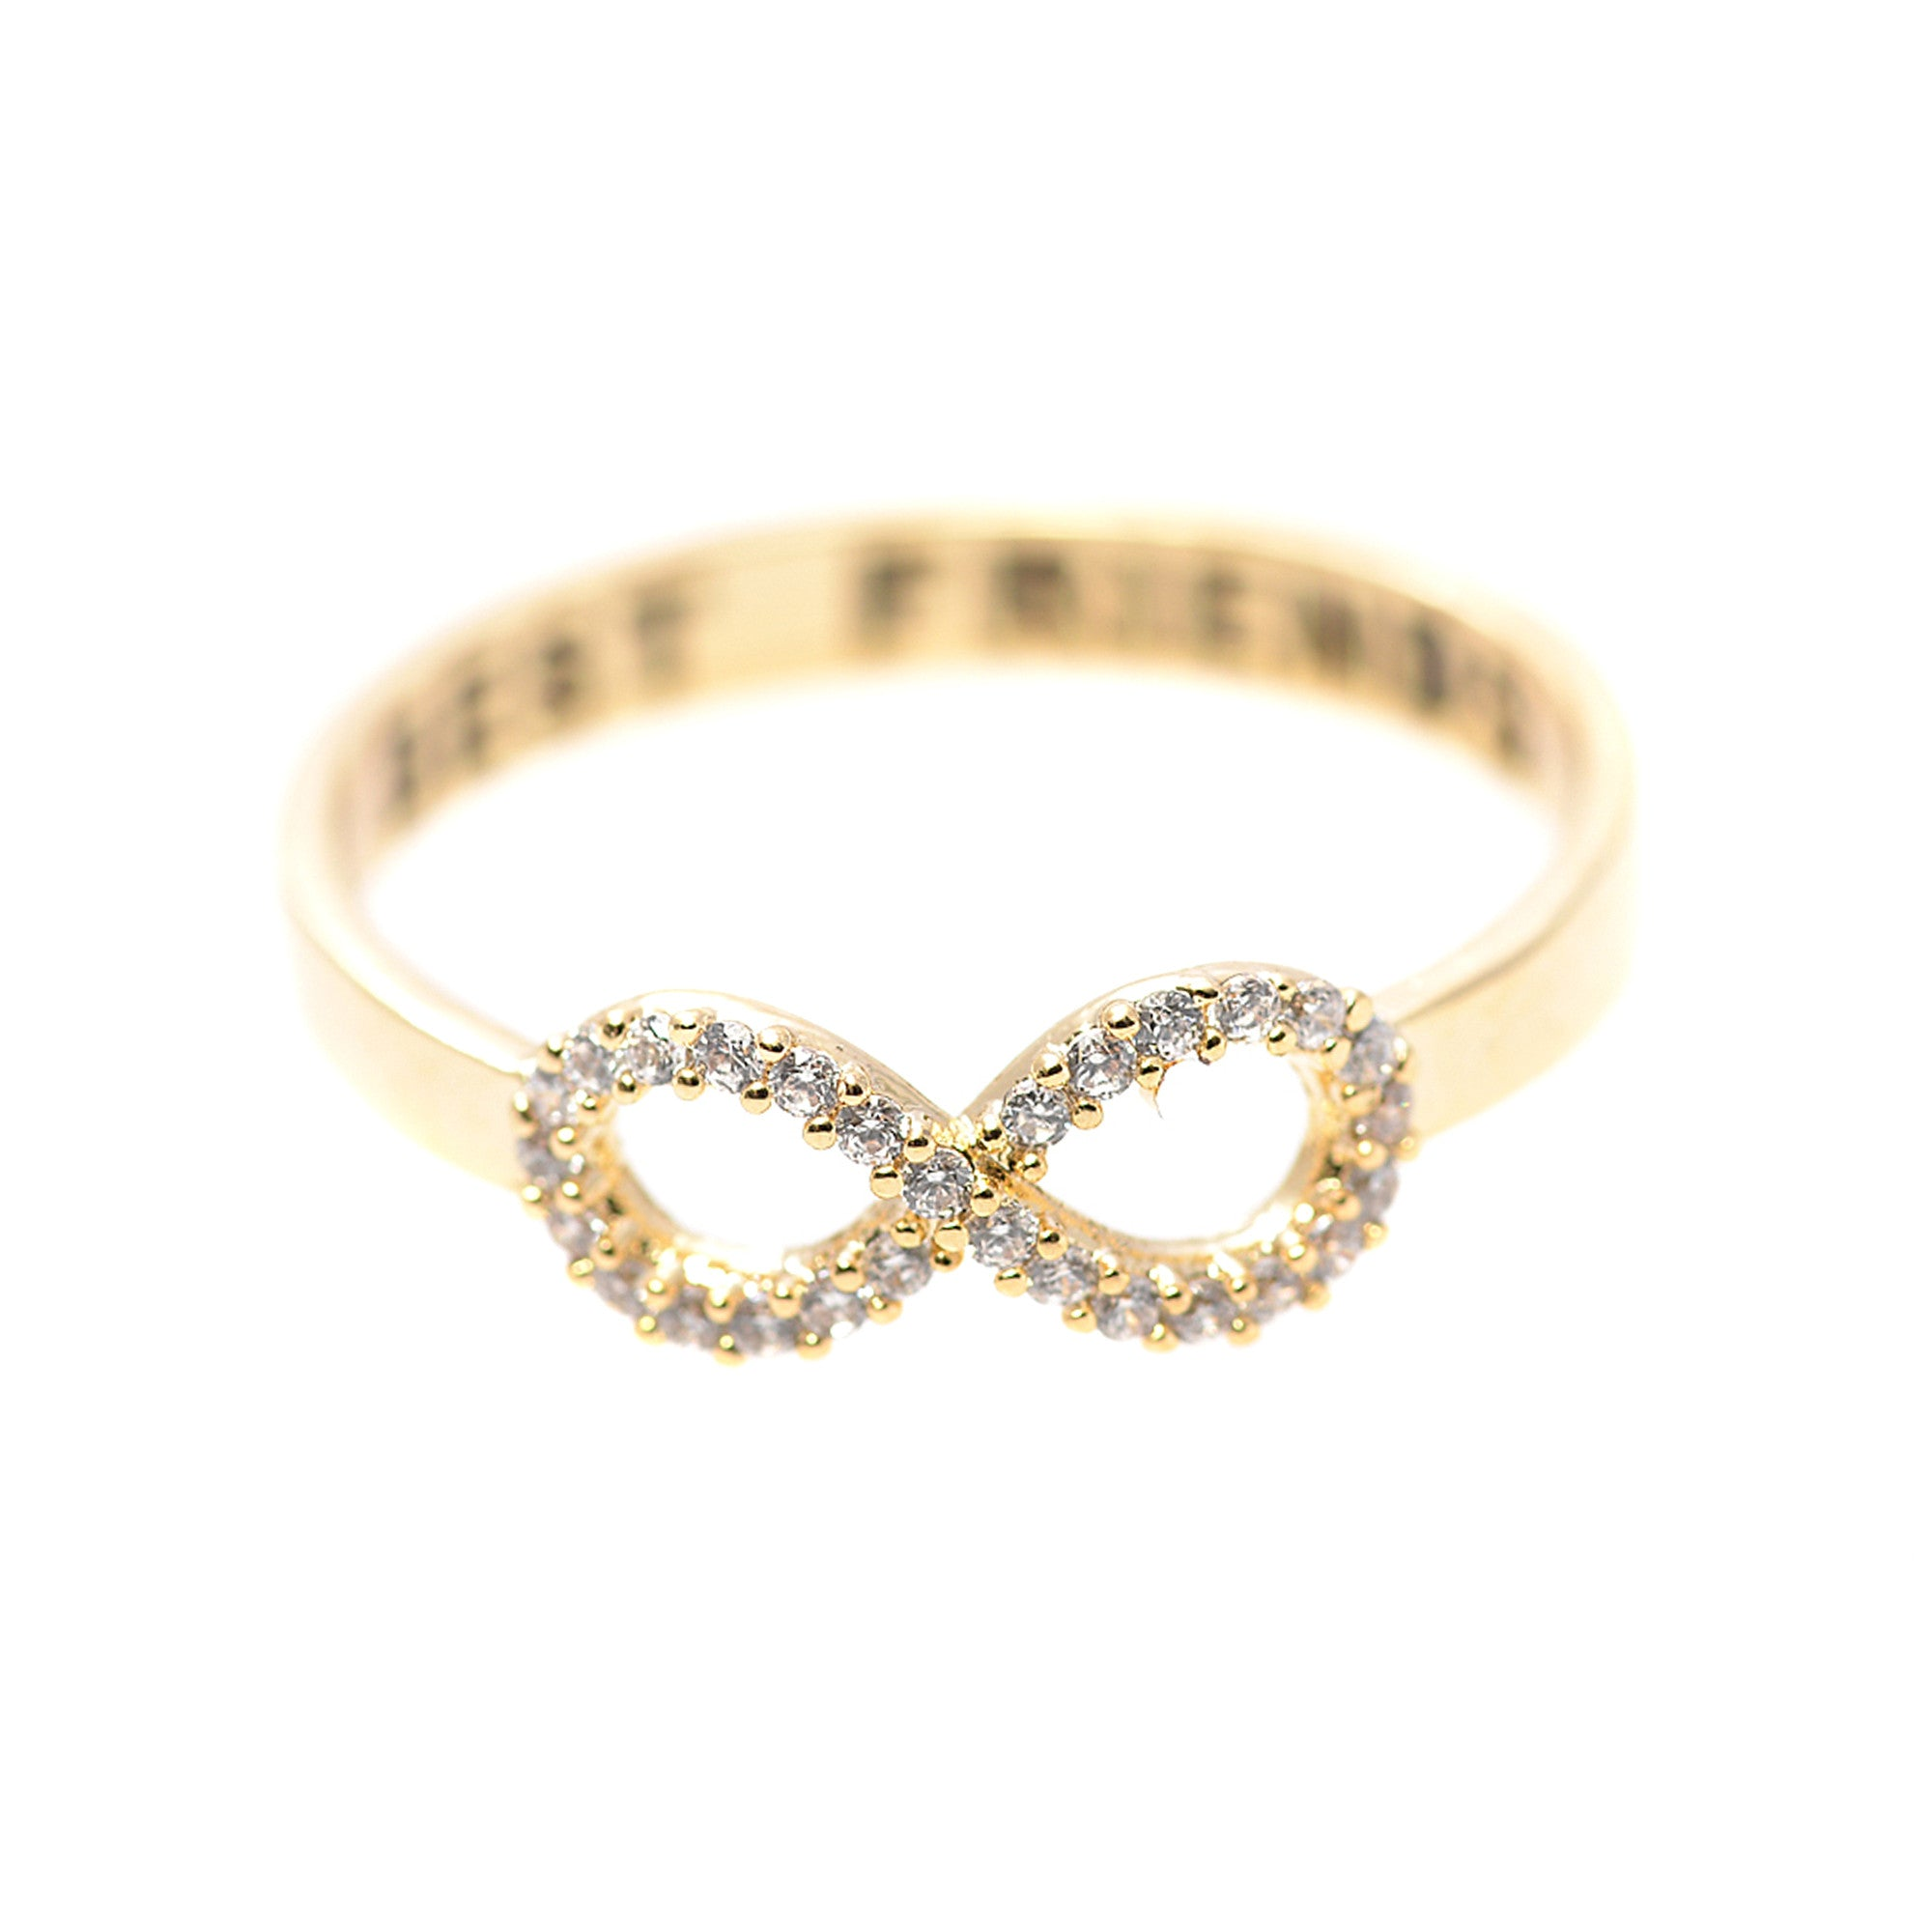 spinningdaisy best infinity at com jewelries find and kitsch crystal rings state texas handcrafted friend ring fashion lettered trendy